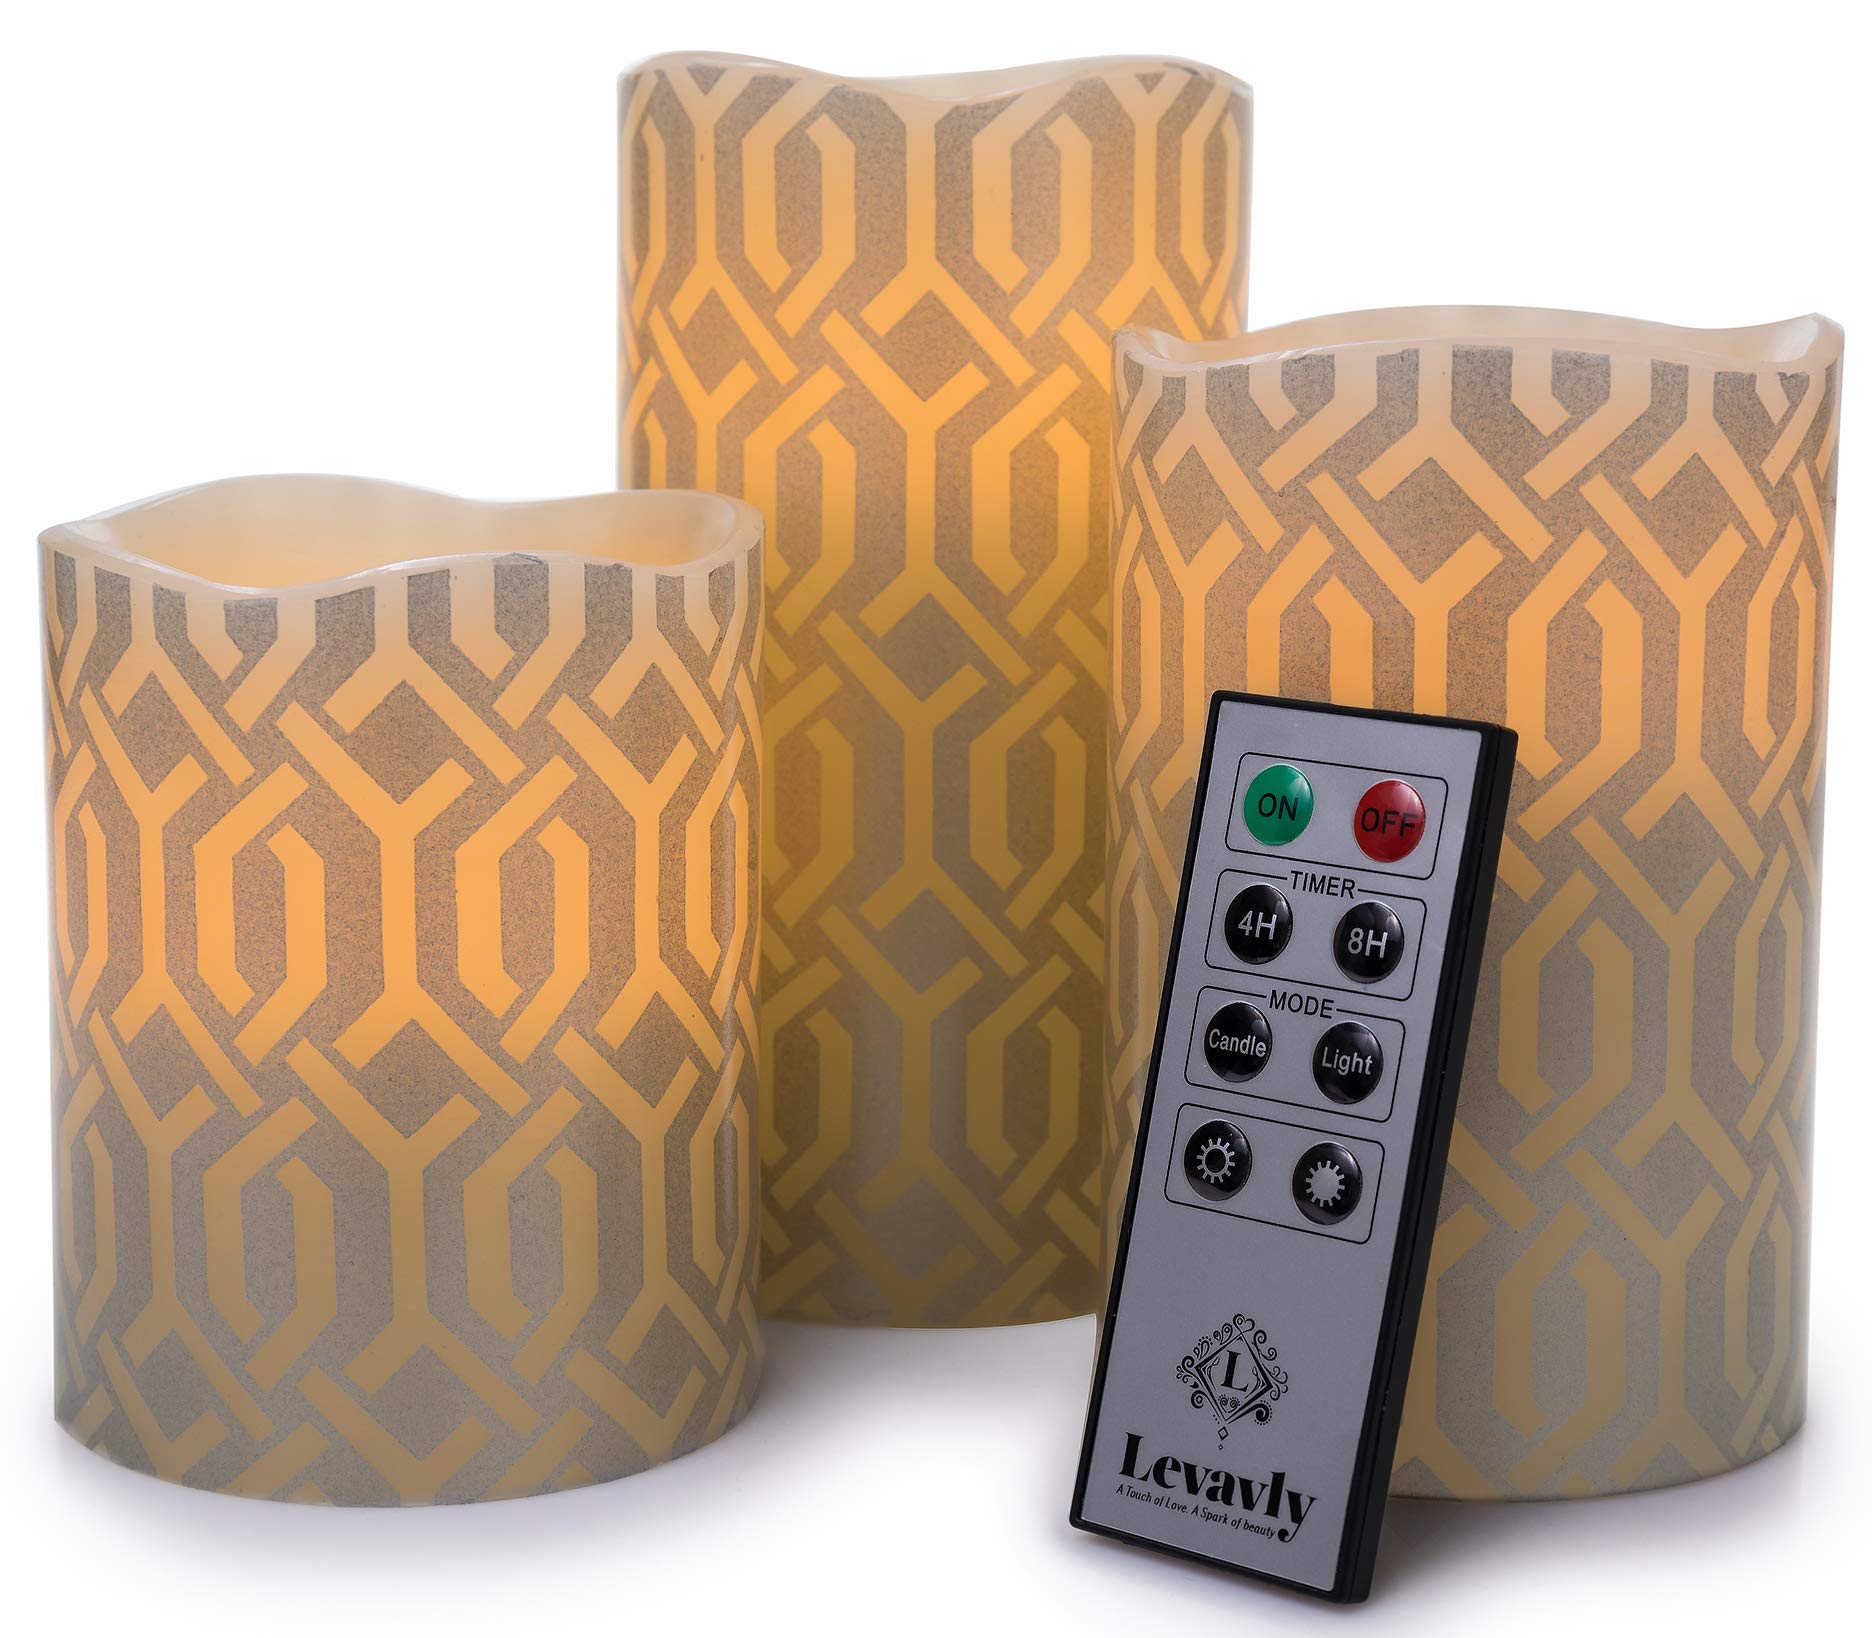 Levavly Flameless Candles Set of 3 - Real Wax LED Candles with Remote Control, Timer & Batteries Included- Flickering Votive Pillar Candles, Special Design 4'' 5'' 6'' Ivory & Silver